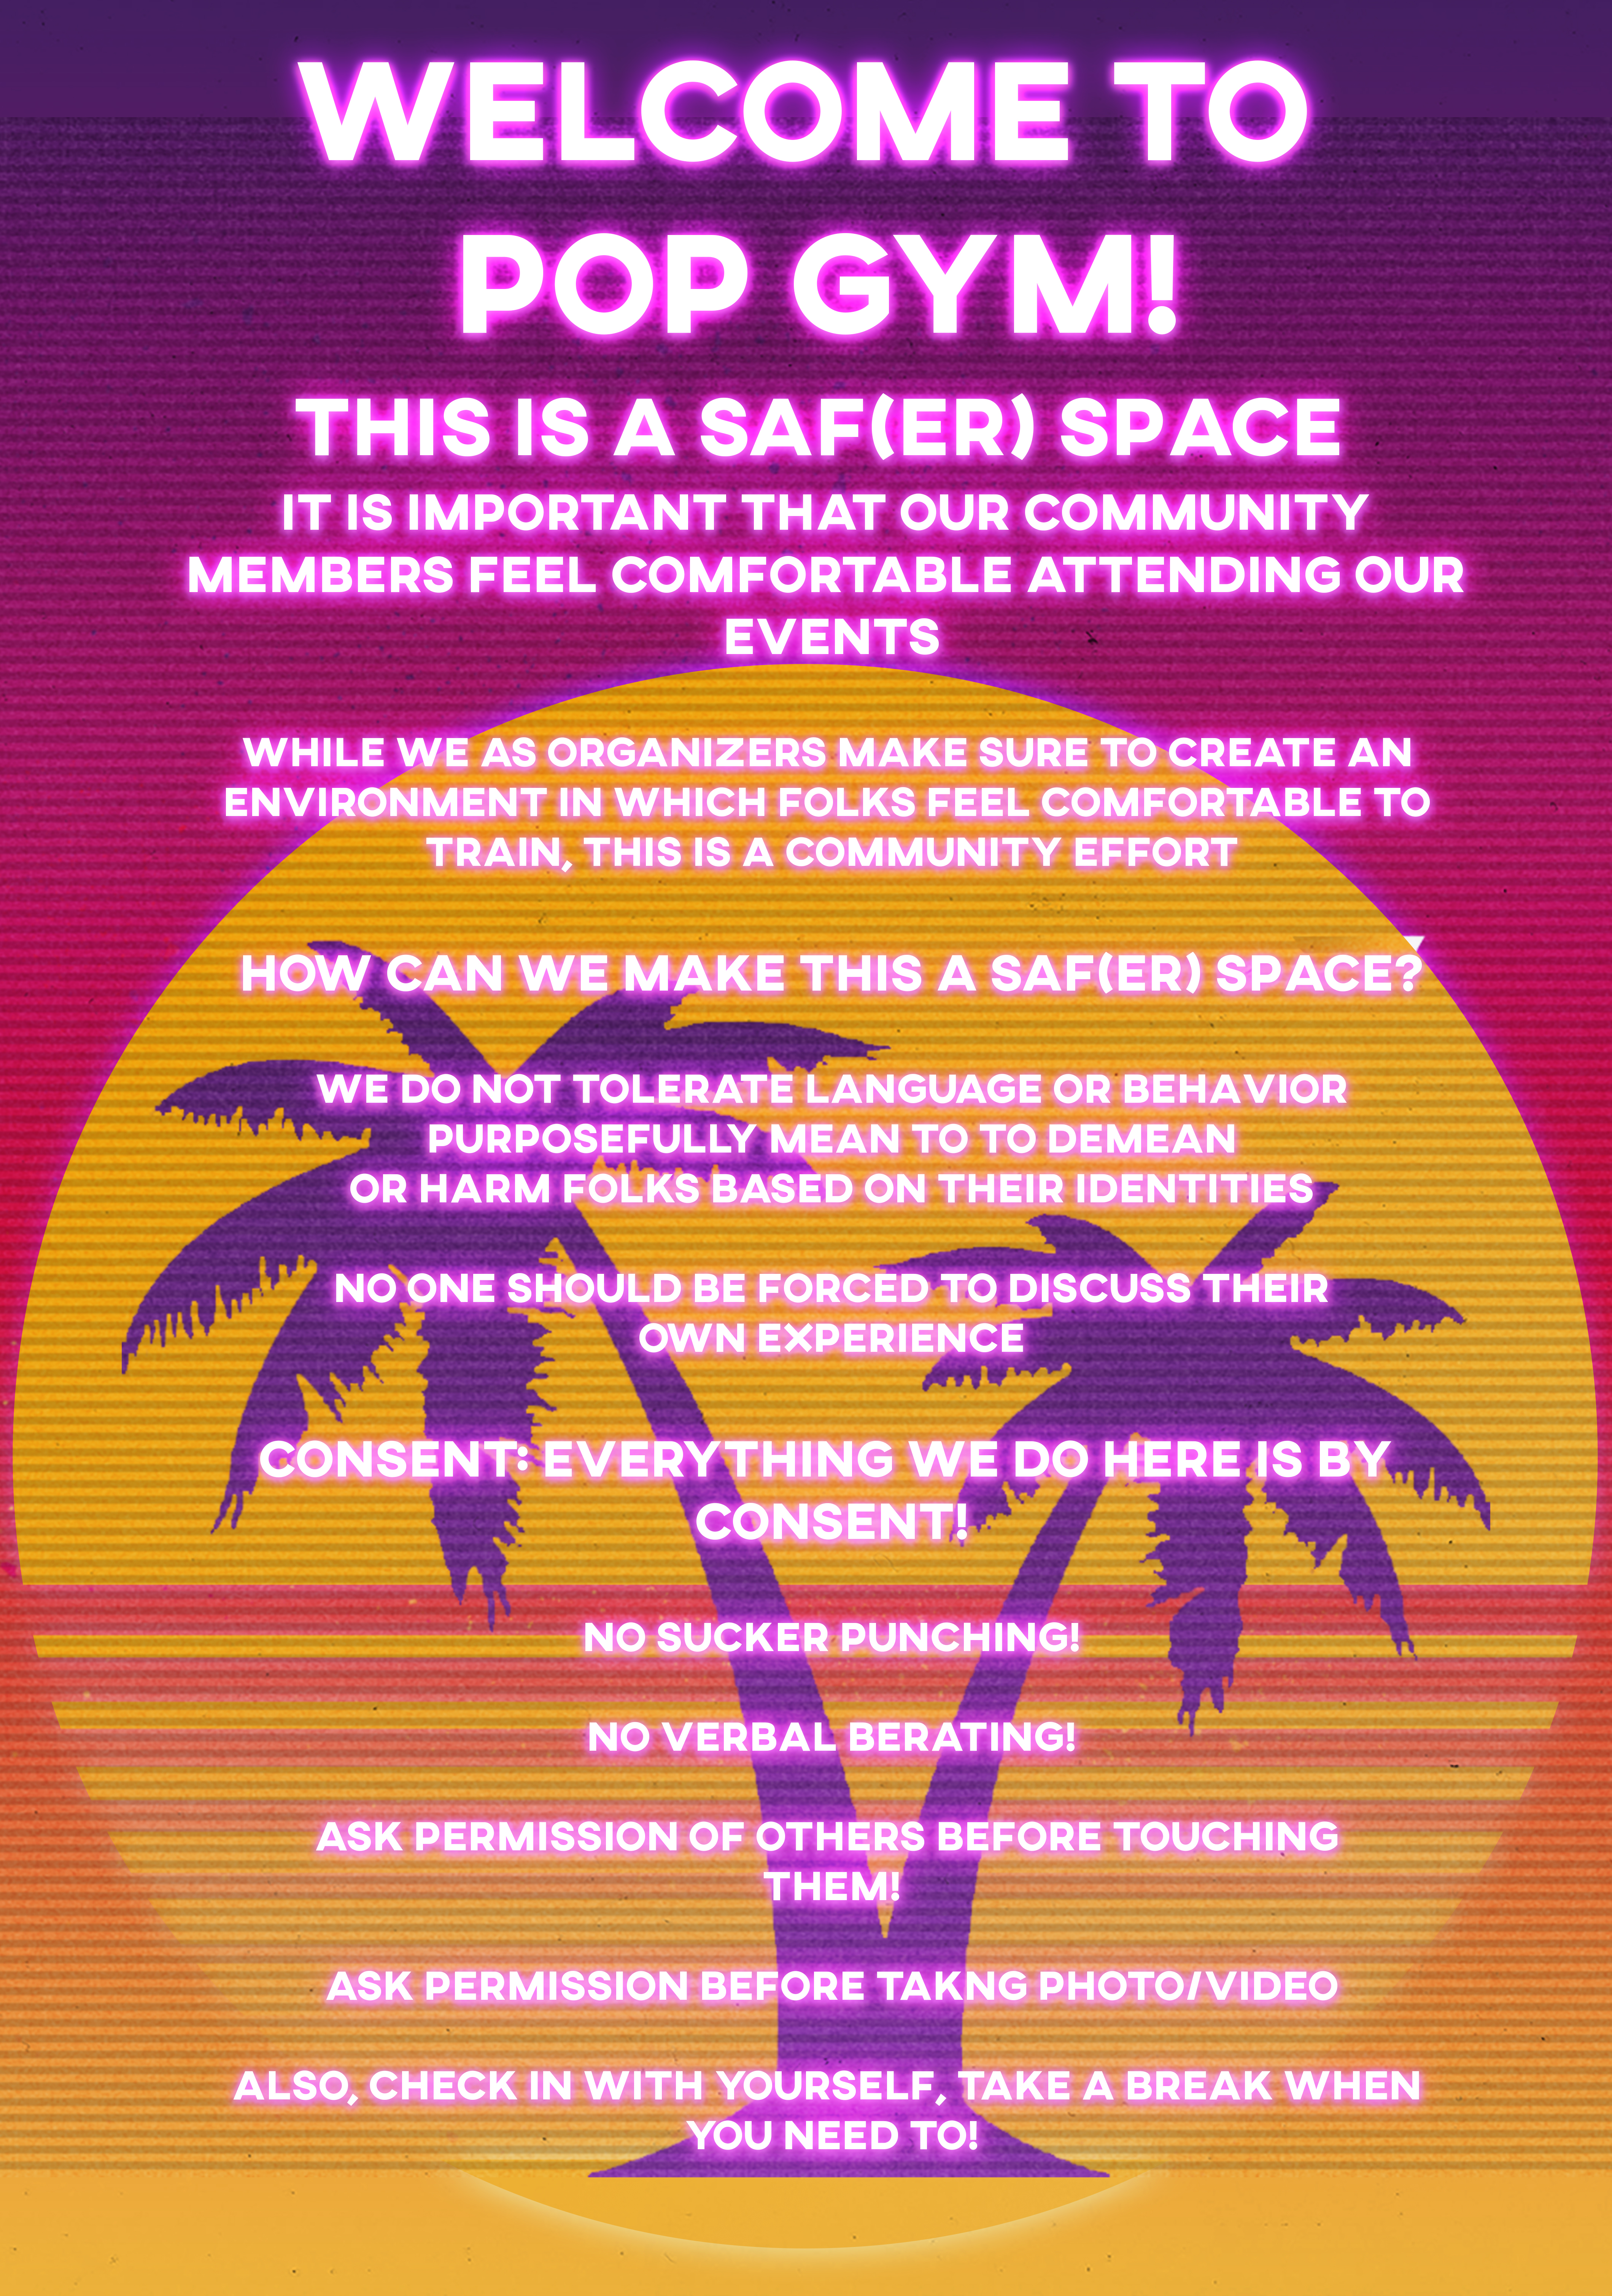 Pop Gym & Safe Space